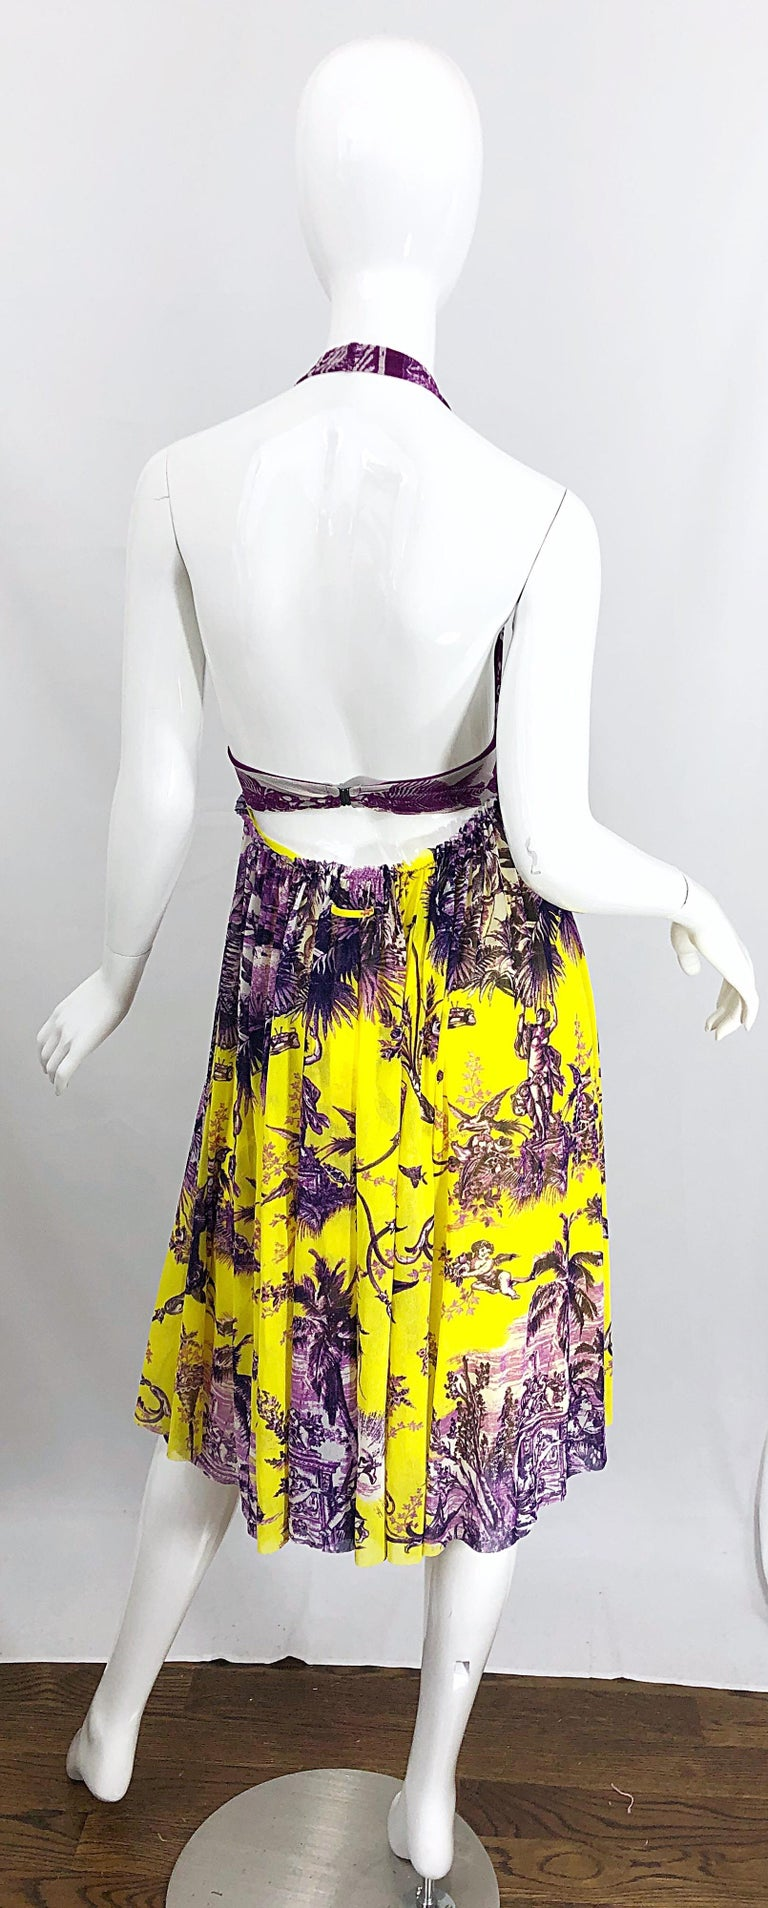 1990s Jean Paul Gaultier Mythical Print Yellow and Purple Vintage Halter Dress In Excellent Condition For Sale In Chicago, IL